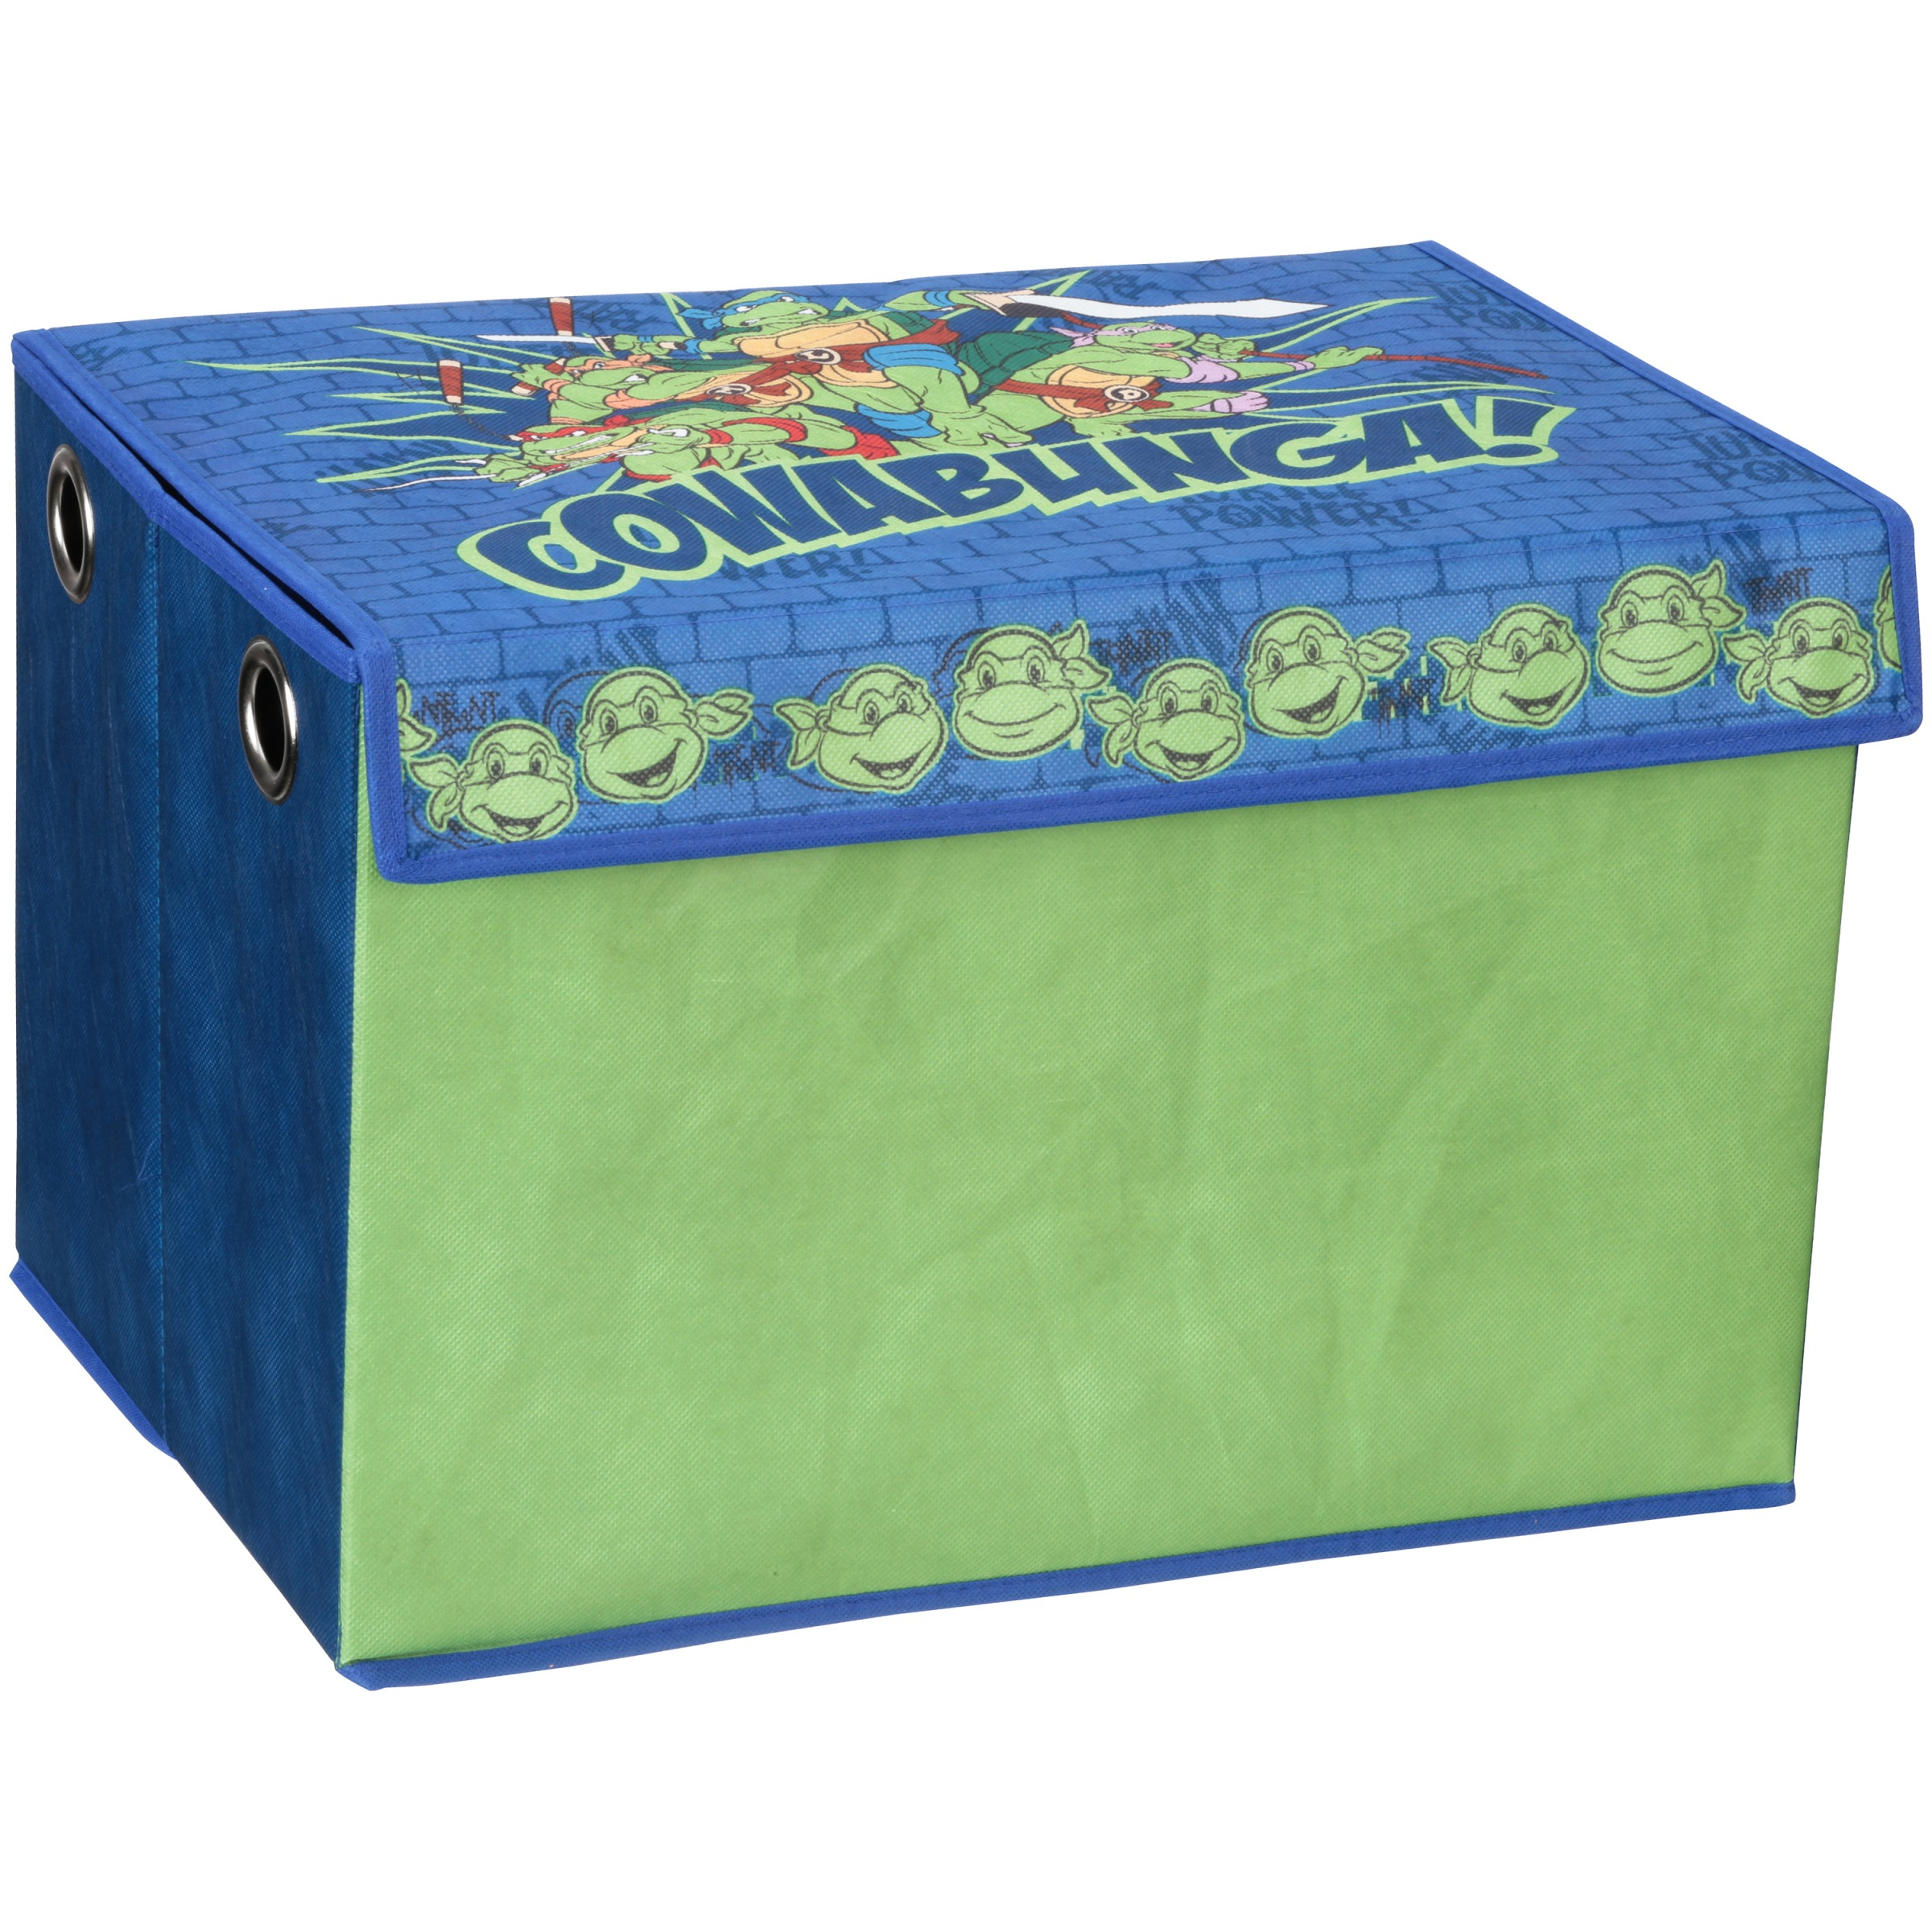 Delta Children® Teenage Mutant Ninja Turtle Collapsible Fabric Toy Box